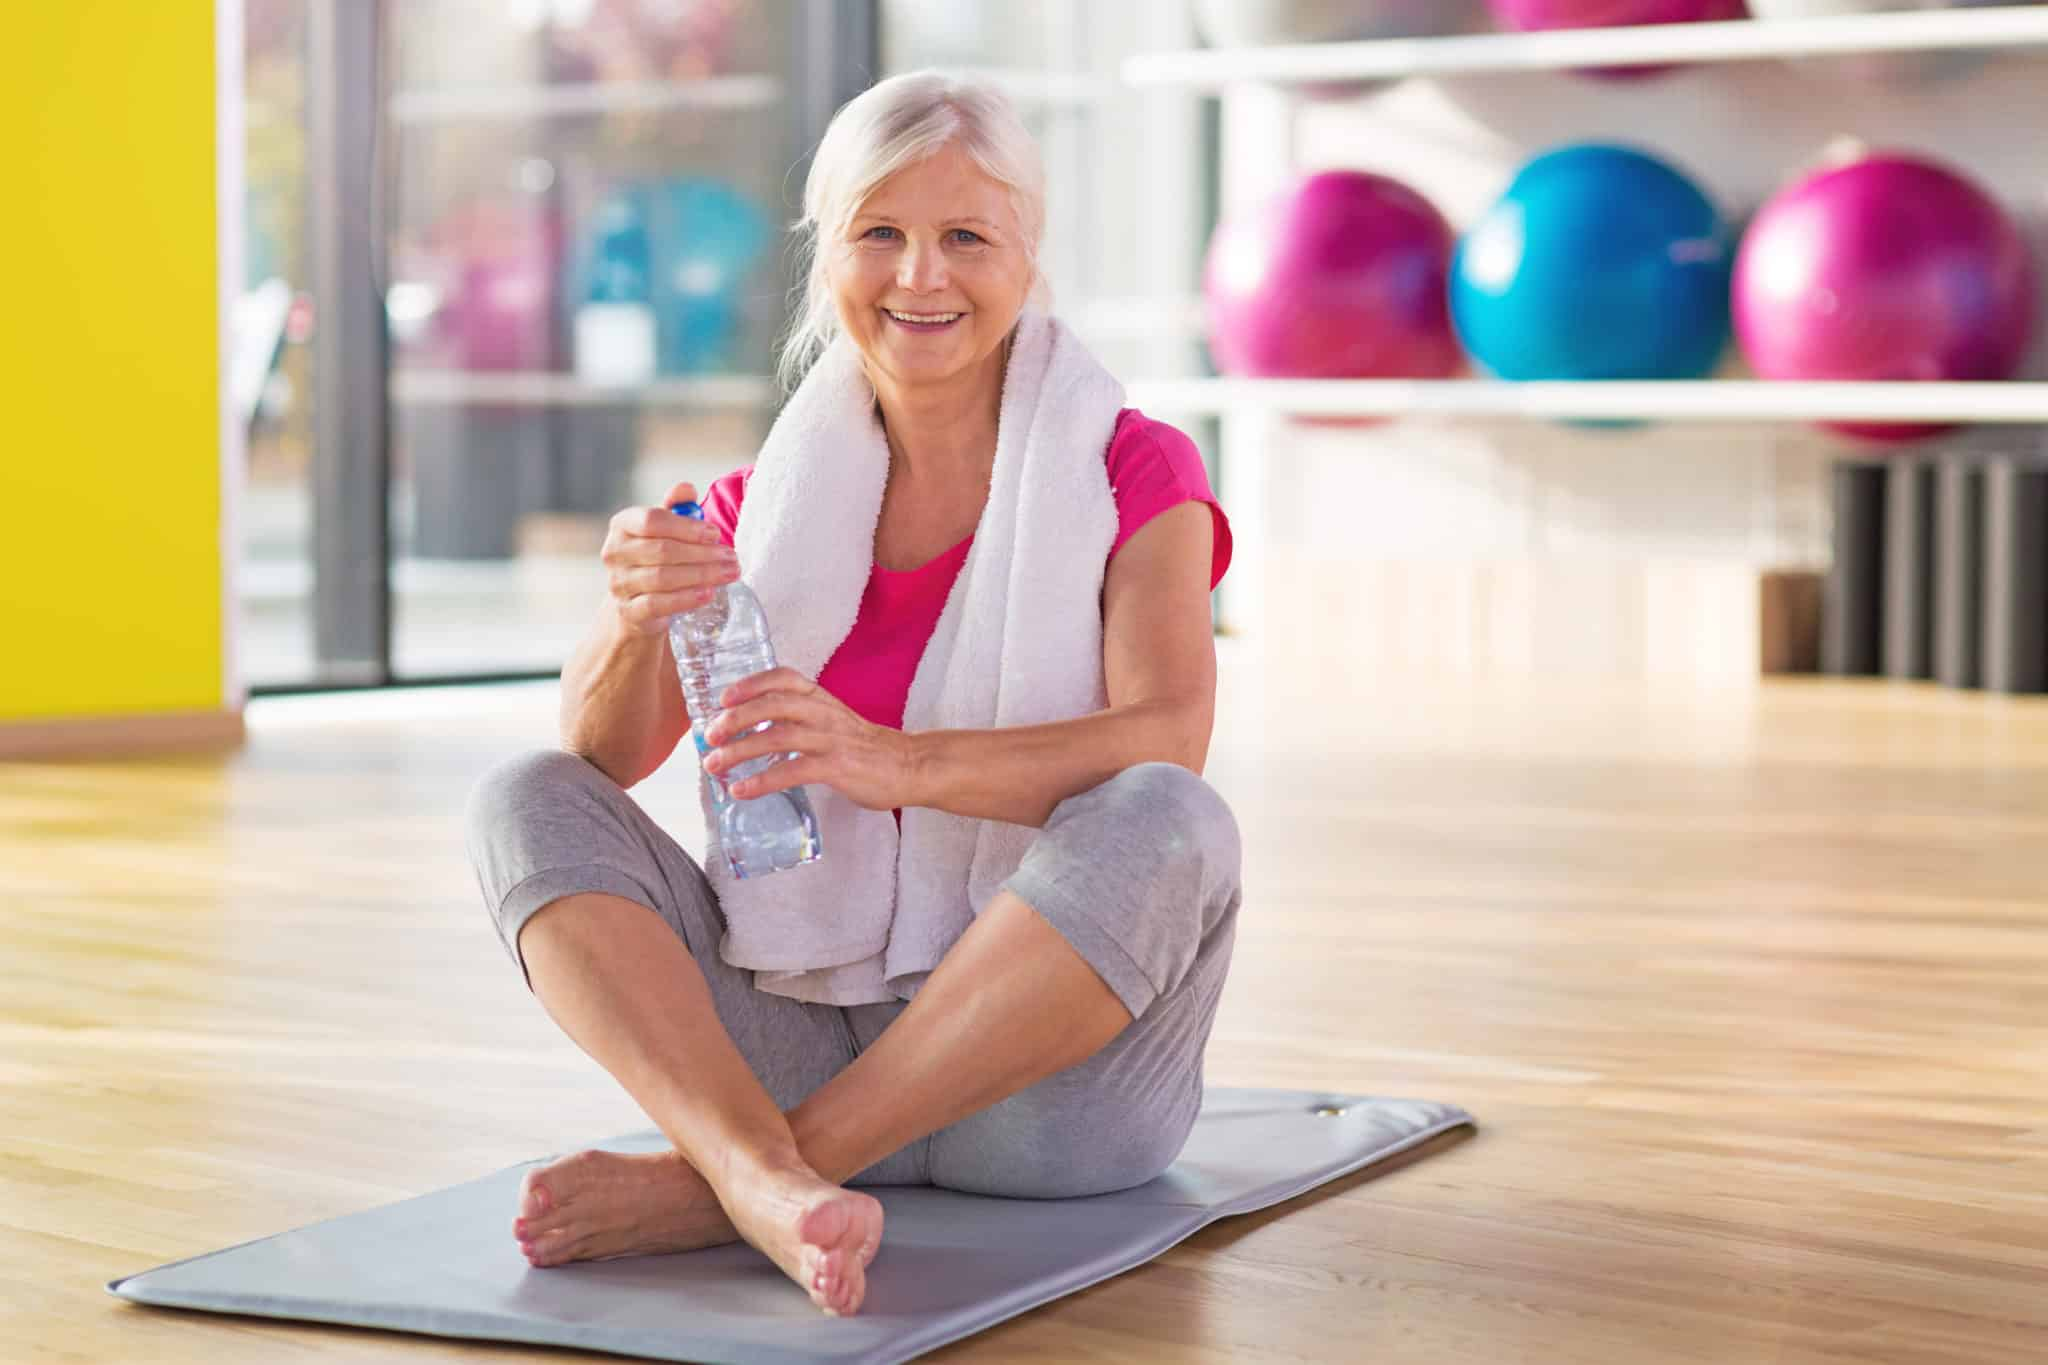 Senior woman sitting on yoga mat with towel around neck and holding water bottle in exercise studio